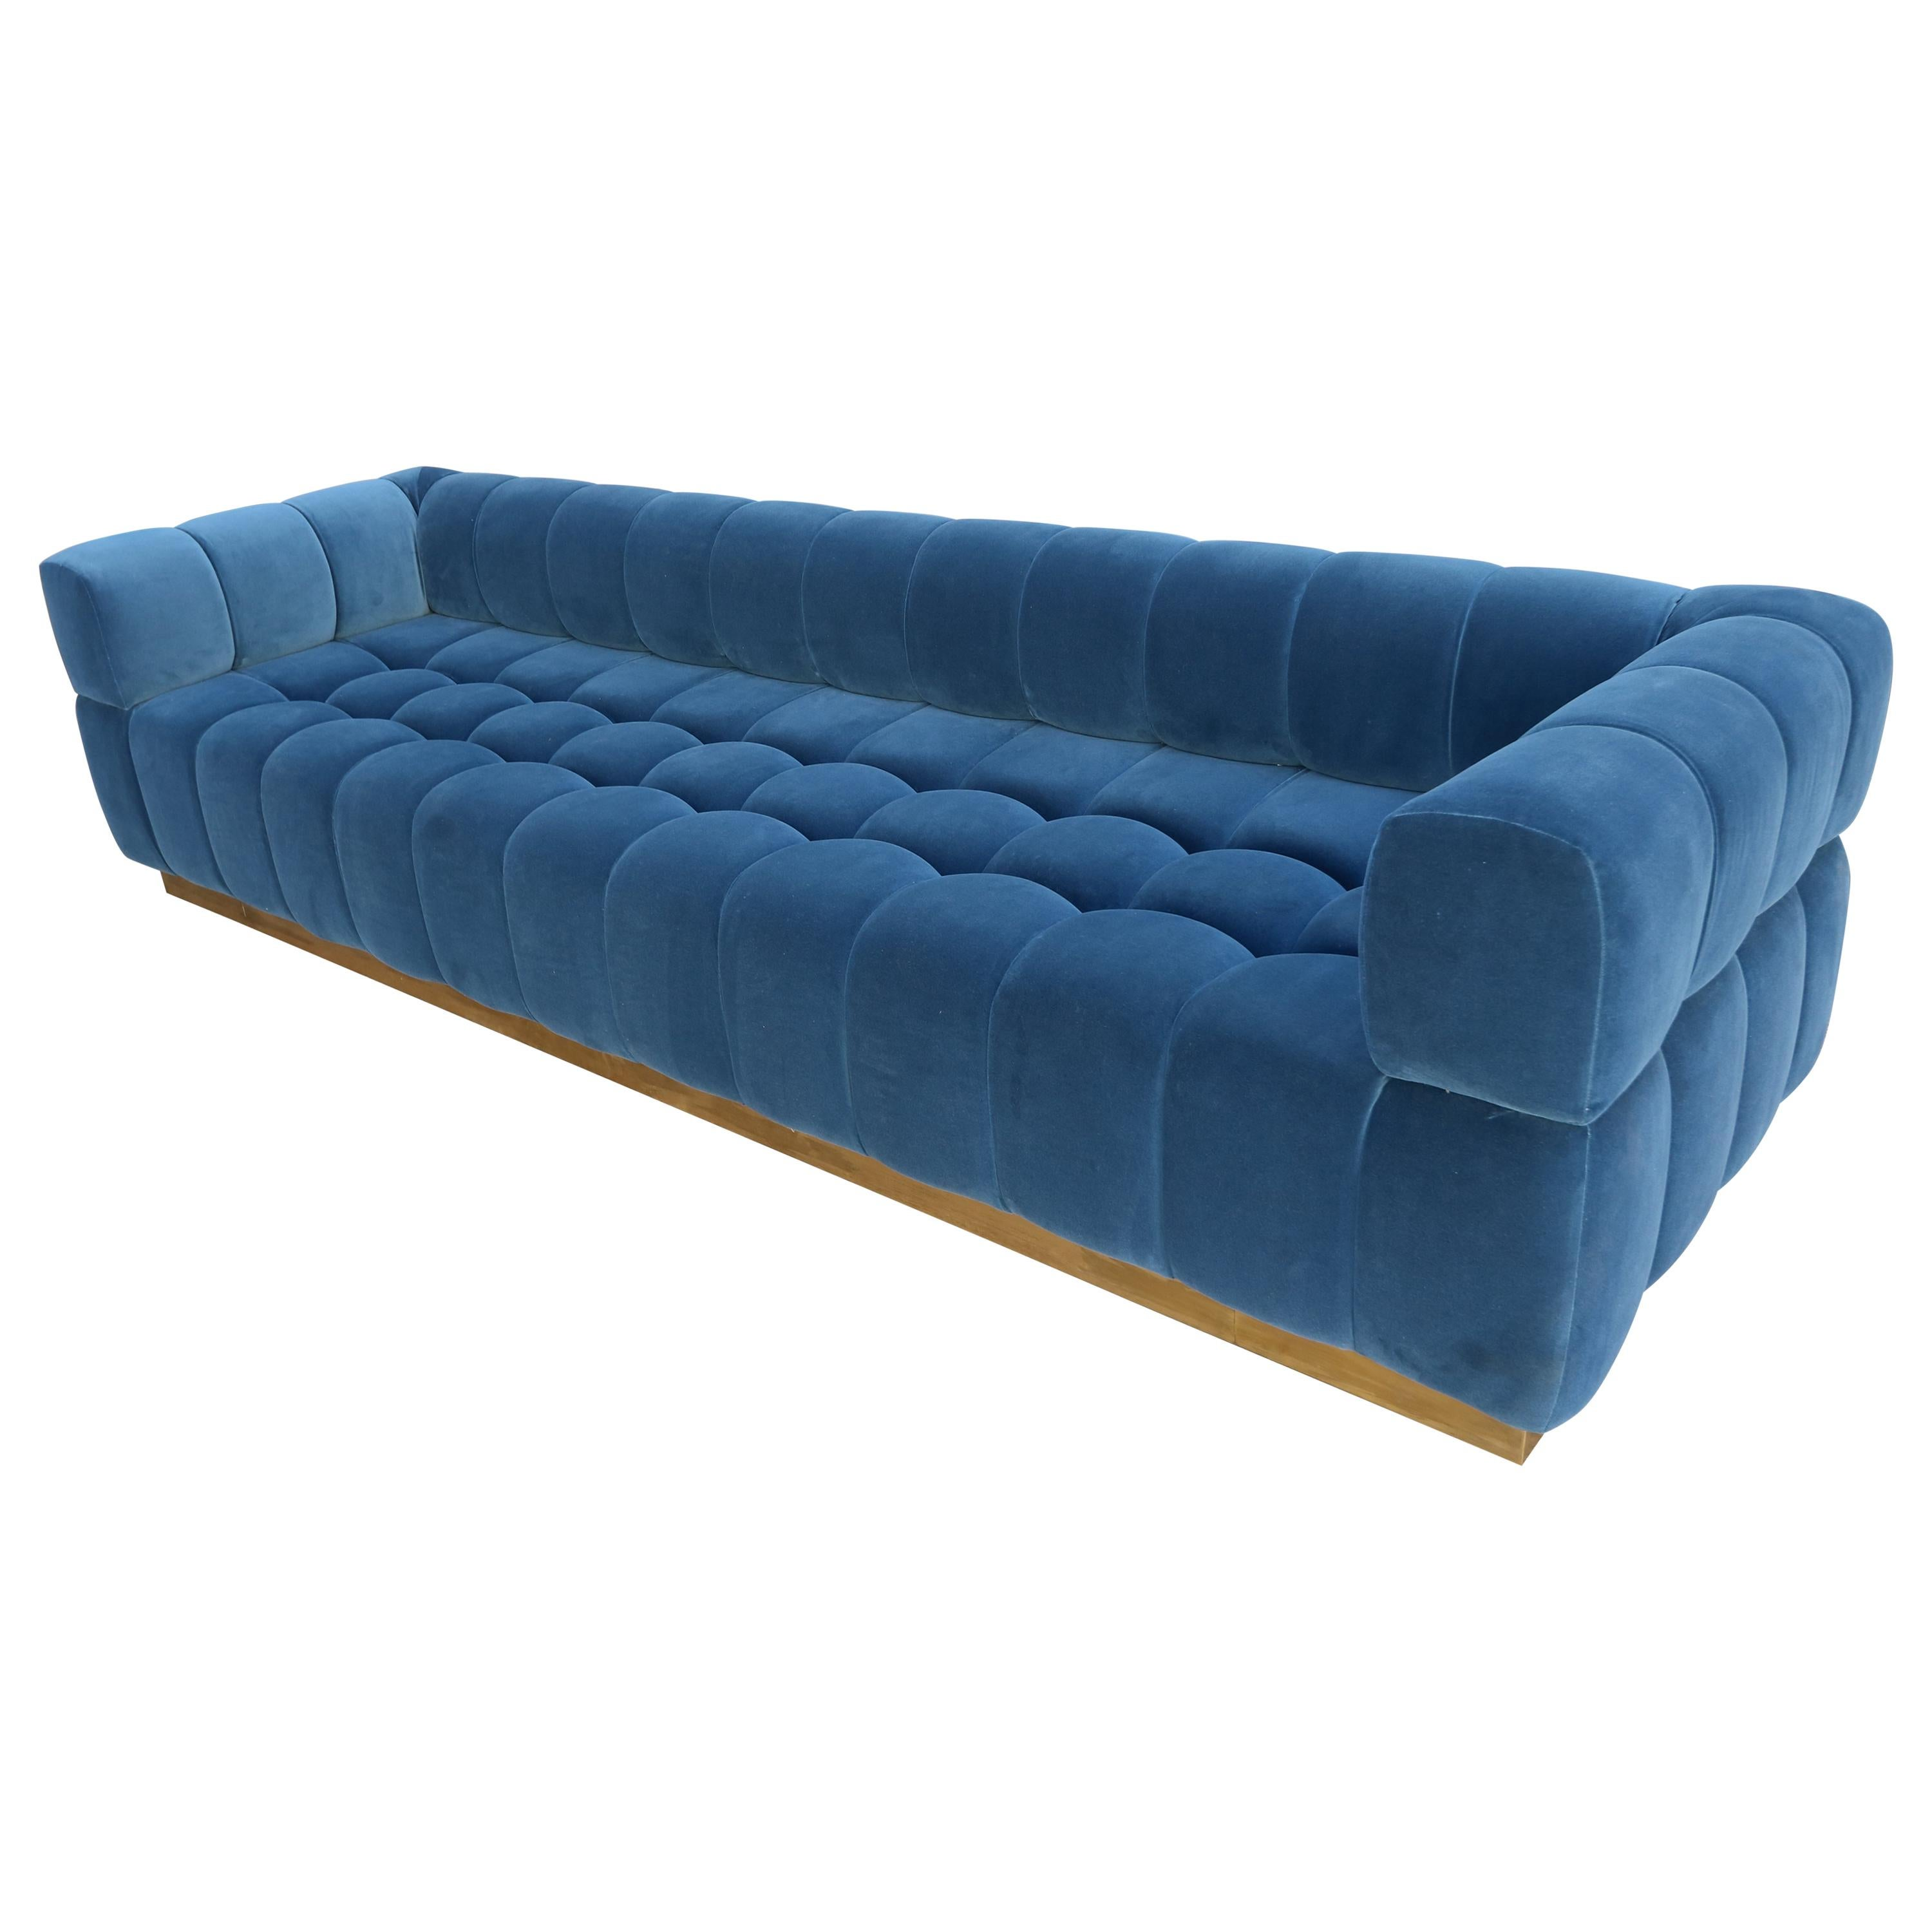 Custom Tufted Blue Velvet Sofa with Brass Base by Adesso Imports